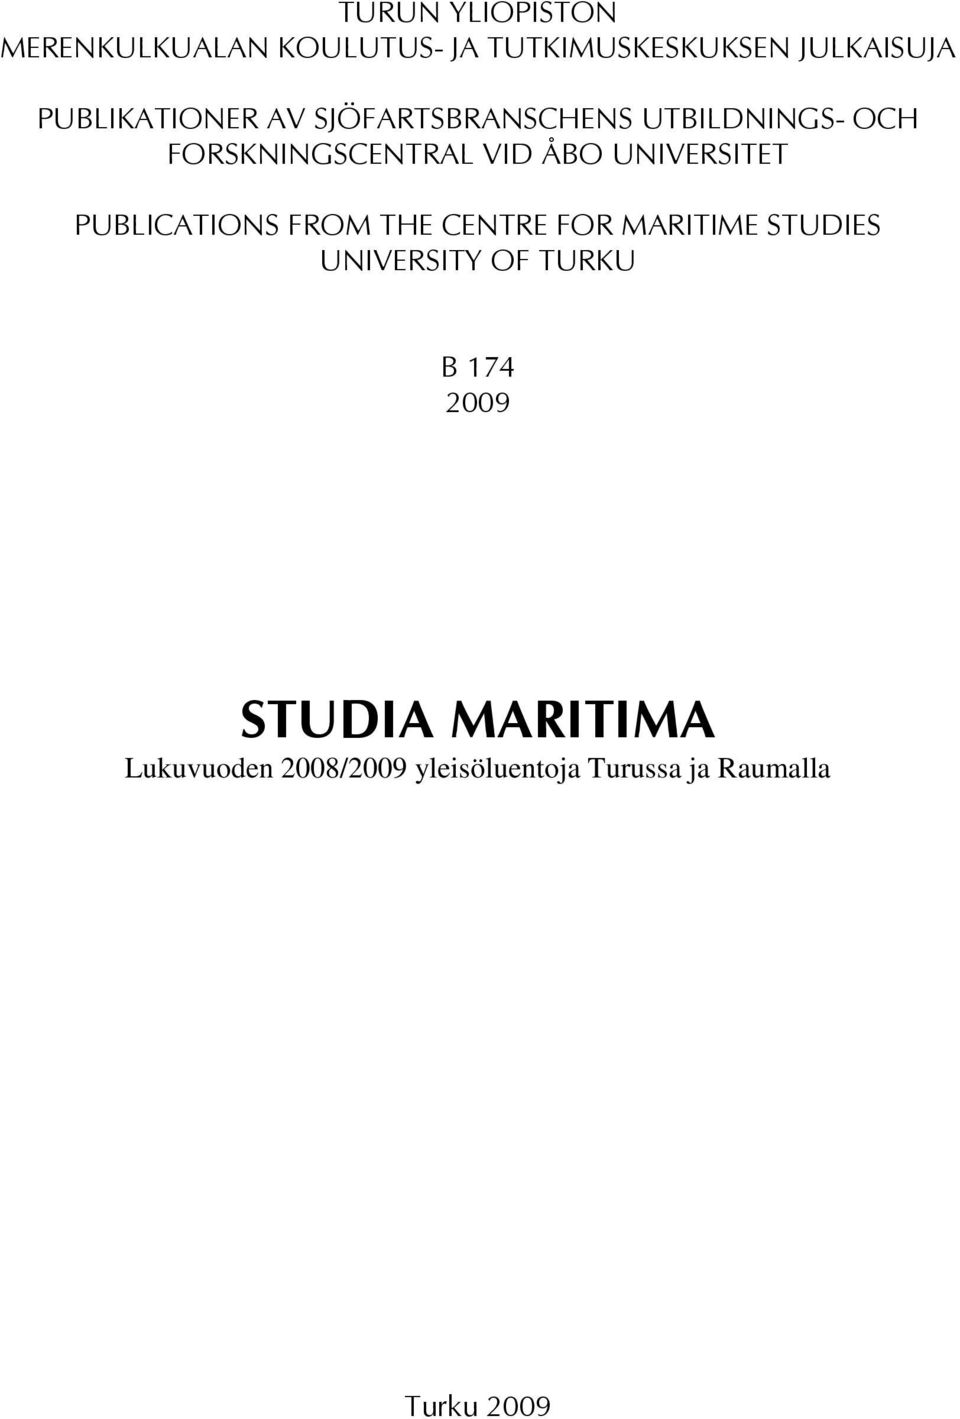 UNIVERSITET PUBLICATIONS FROM THE CENTRE FOR MARITIME STUDIES UNIVERSITY OF TURKU